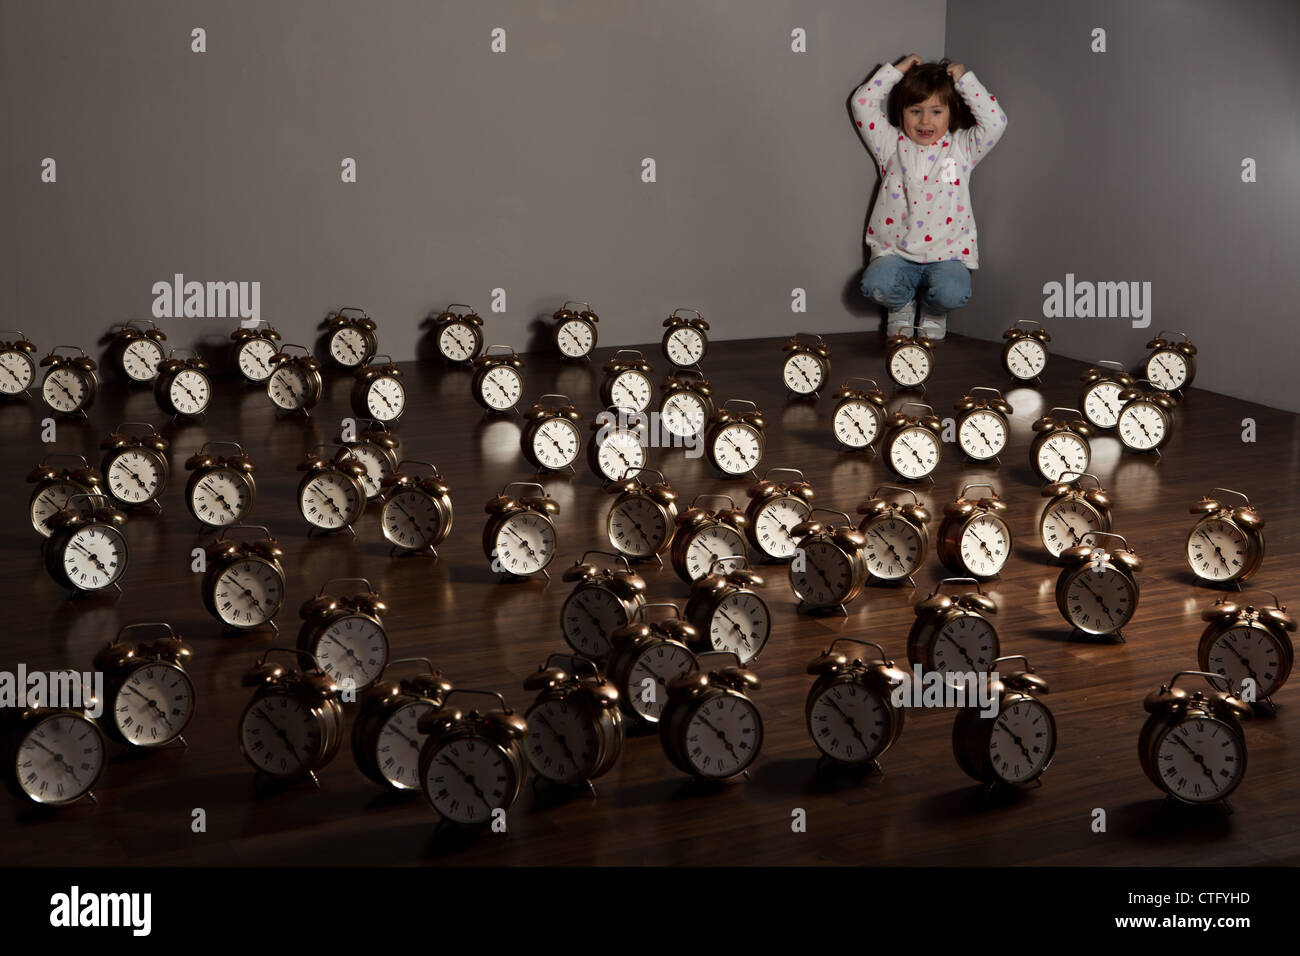 alarms,annoyed,bare,bells,brown,caucasian,child,children,clocks,corner,covered,female,floor,girl,large,lots,multiple,number,numerous,objects,quantity,room,scream,screaming,stressed,stressful,supported,synchronized,synchrony,time,times,walls,white - Stock Image